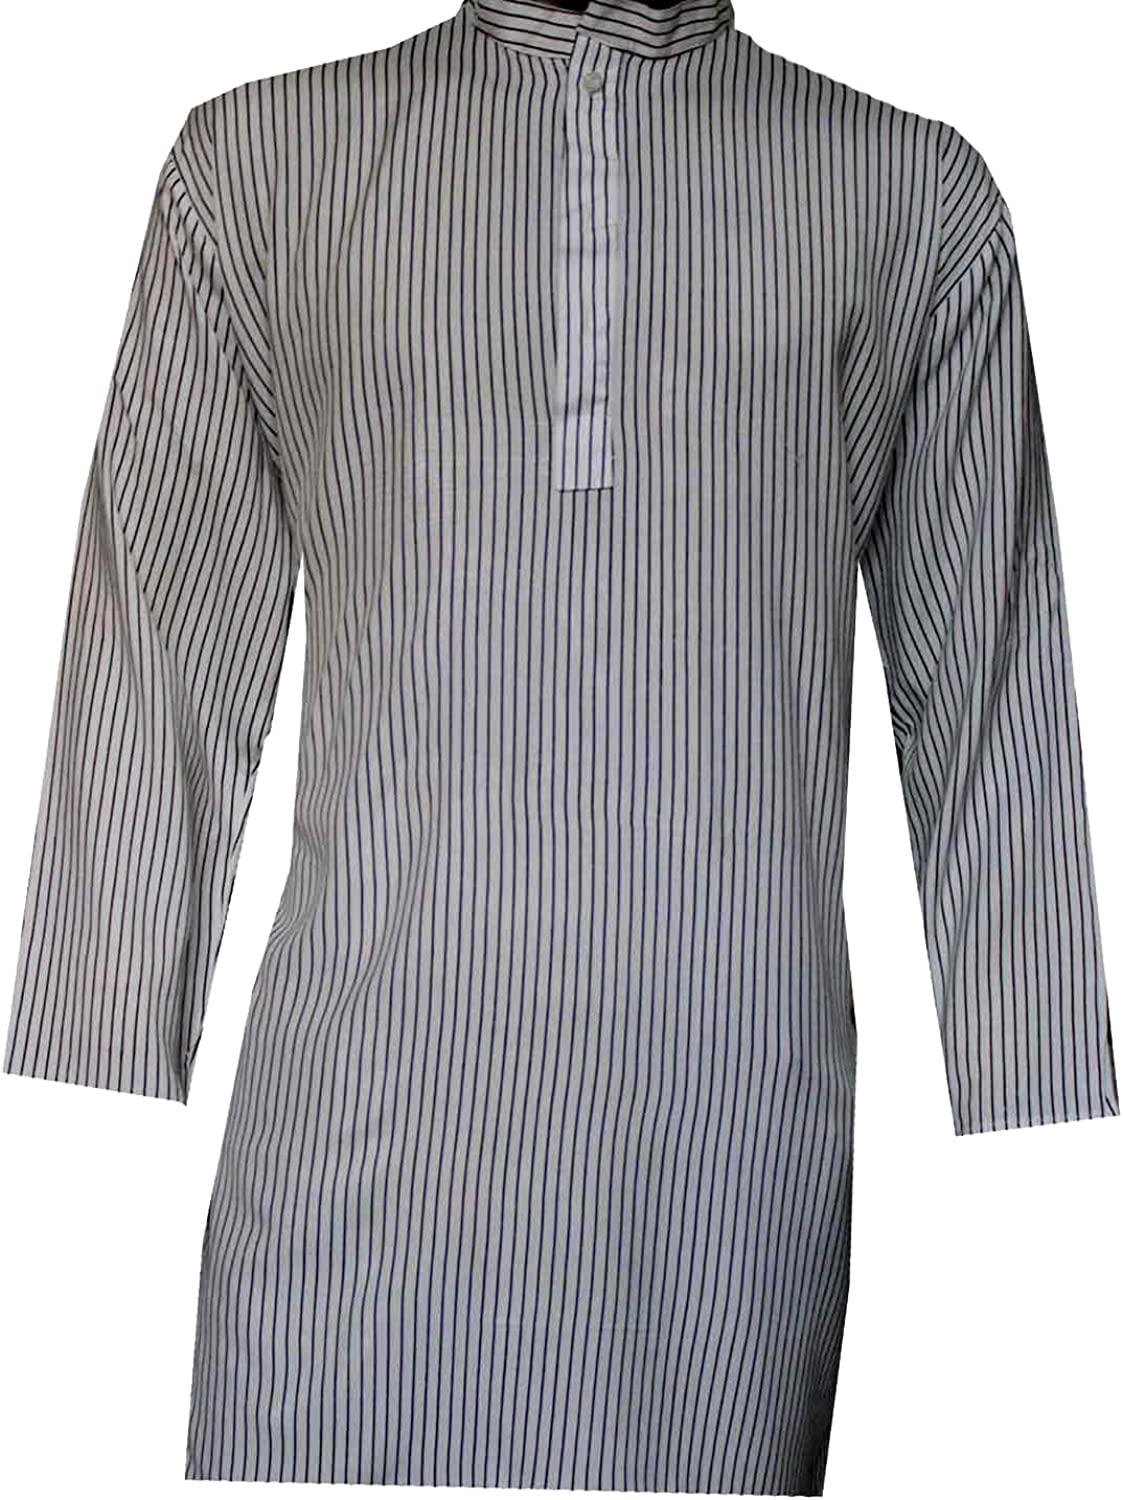 Lakkar Haveli Mens Indian Tunic Button Down Shirts Shirt Kurta Solid Cream Color 100/% Cotton Short Sleeve Big Tall